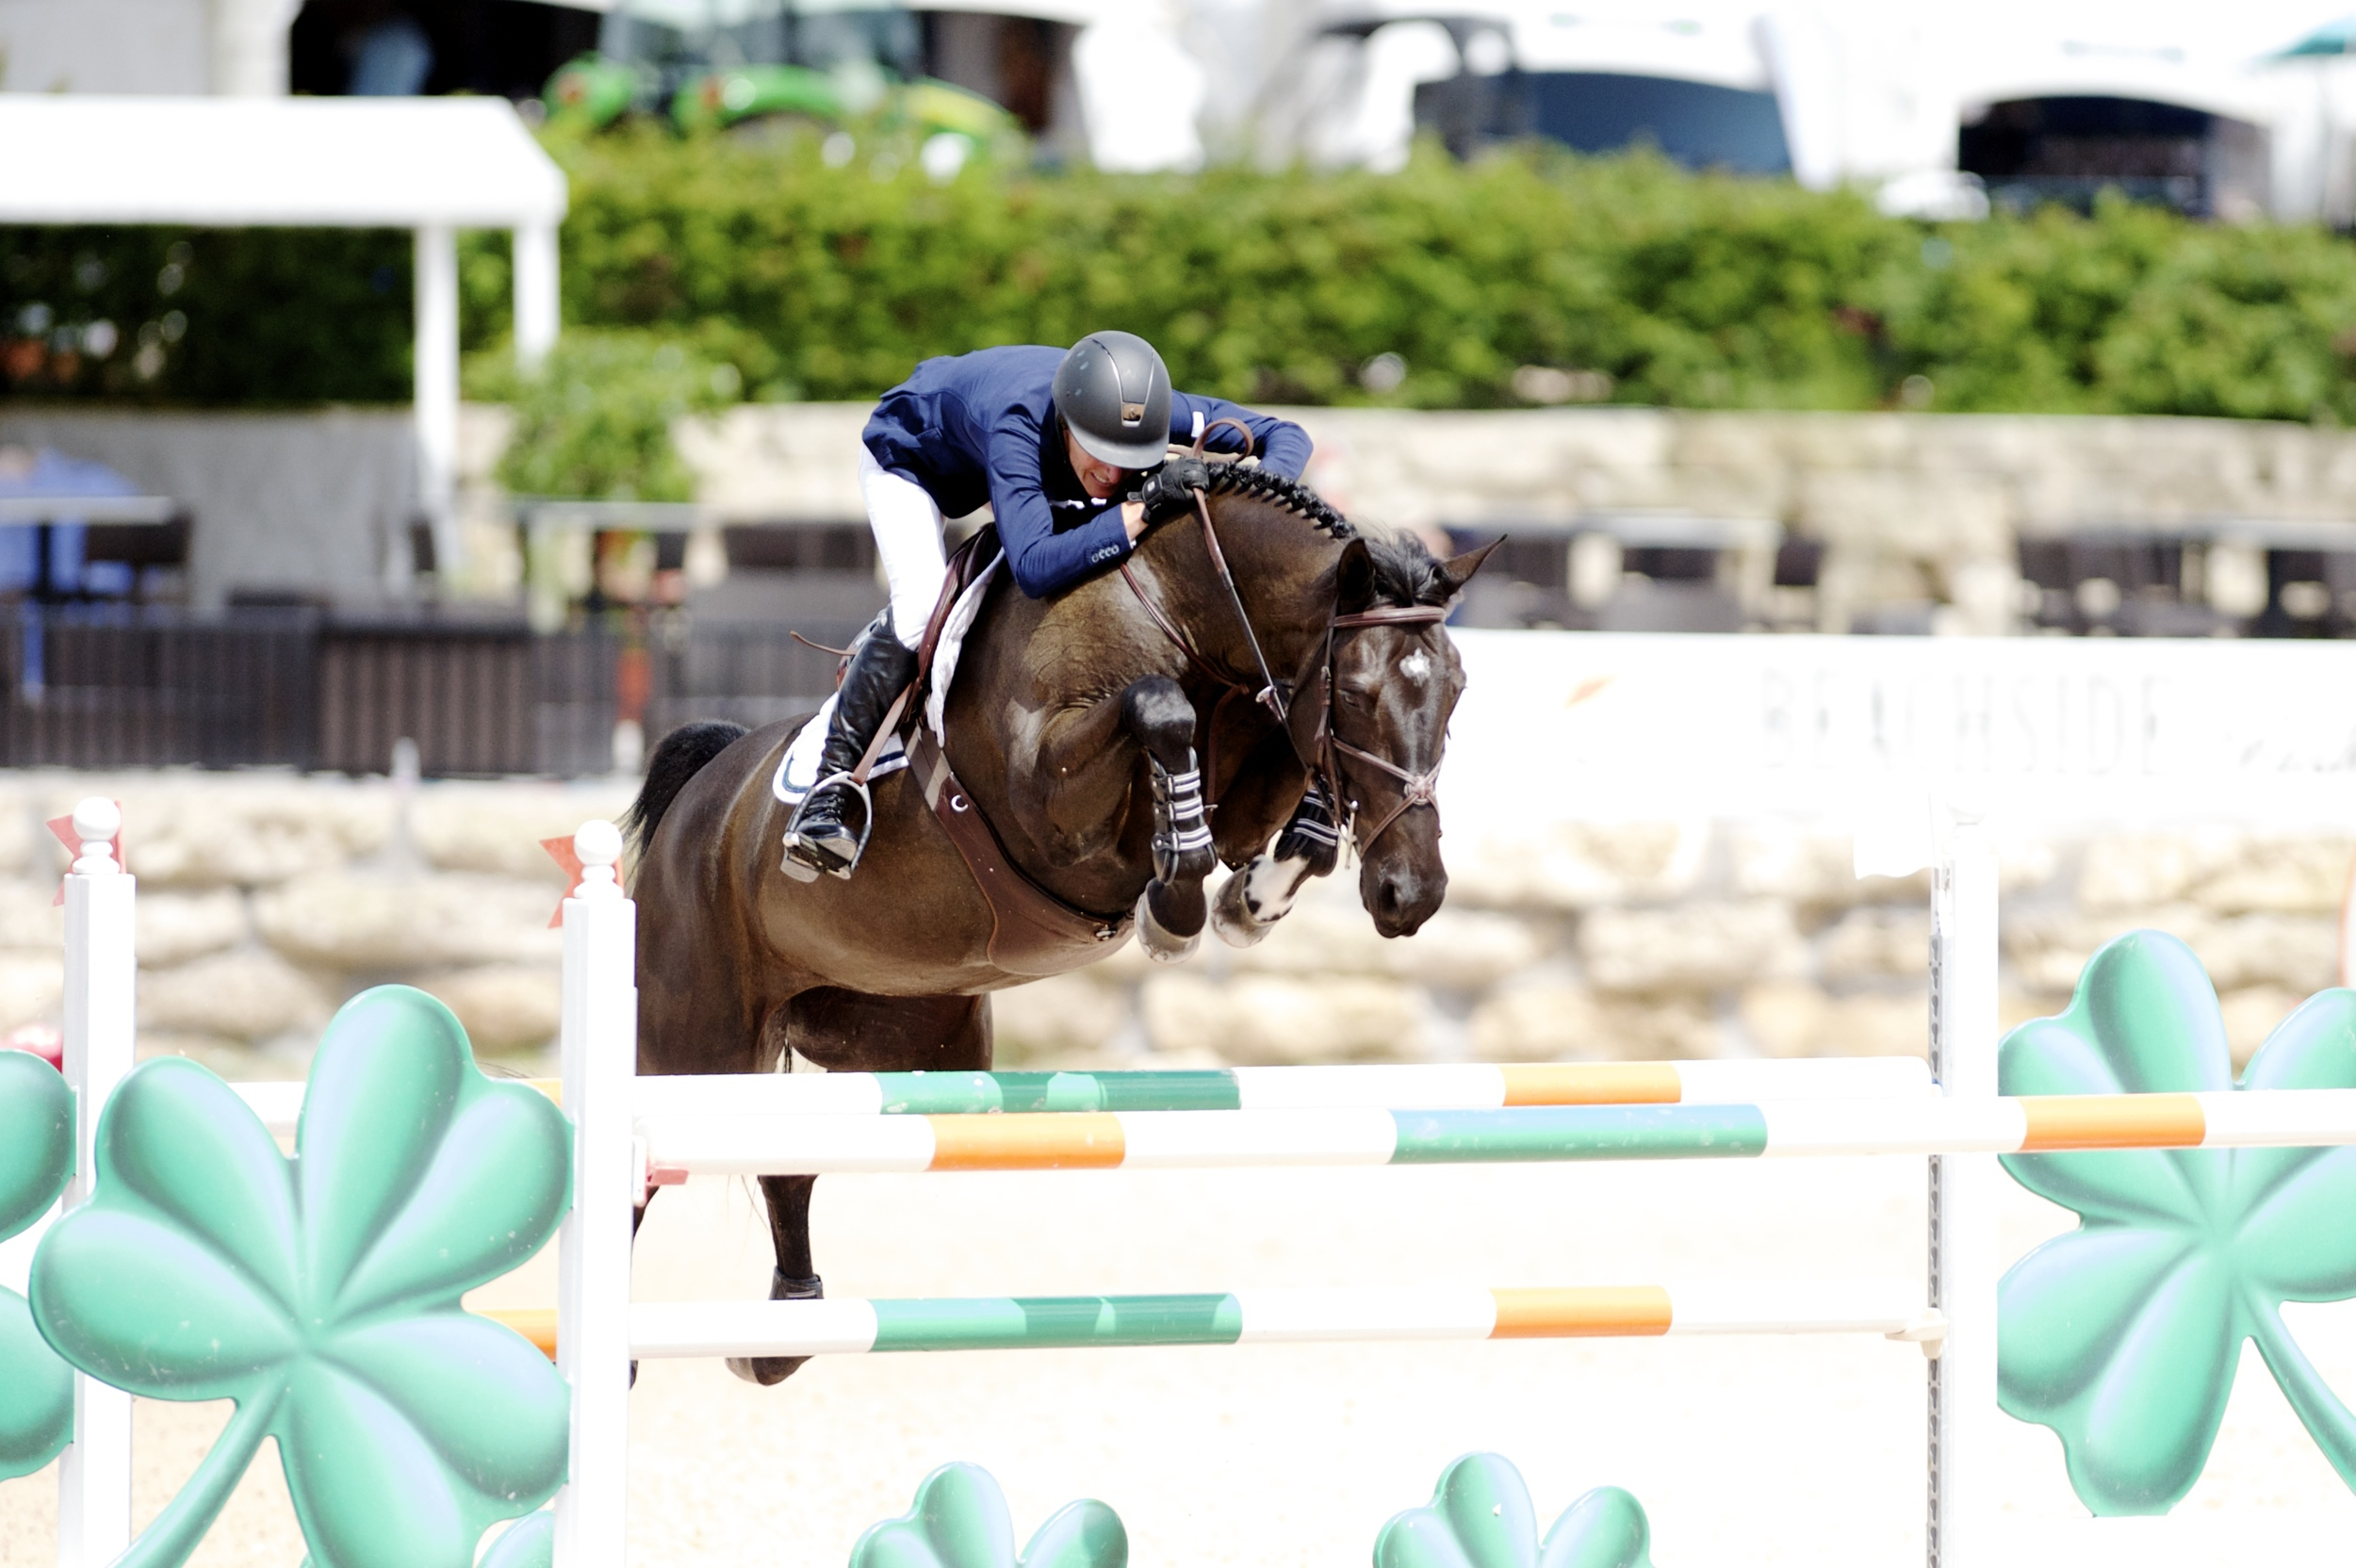 Molly Ashe and Balous Day Date at the Winter Equestrian Festival